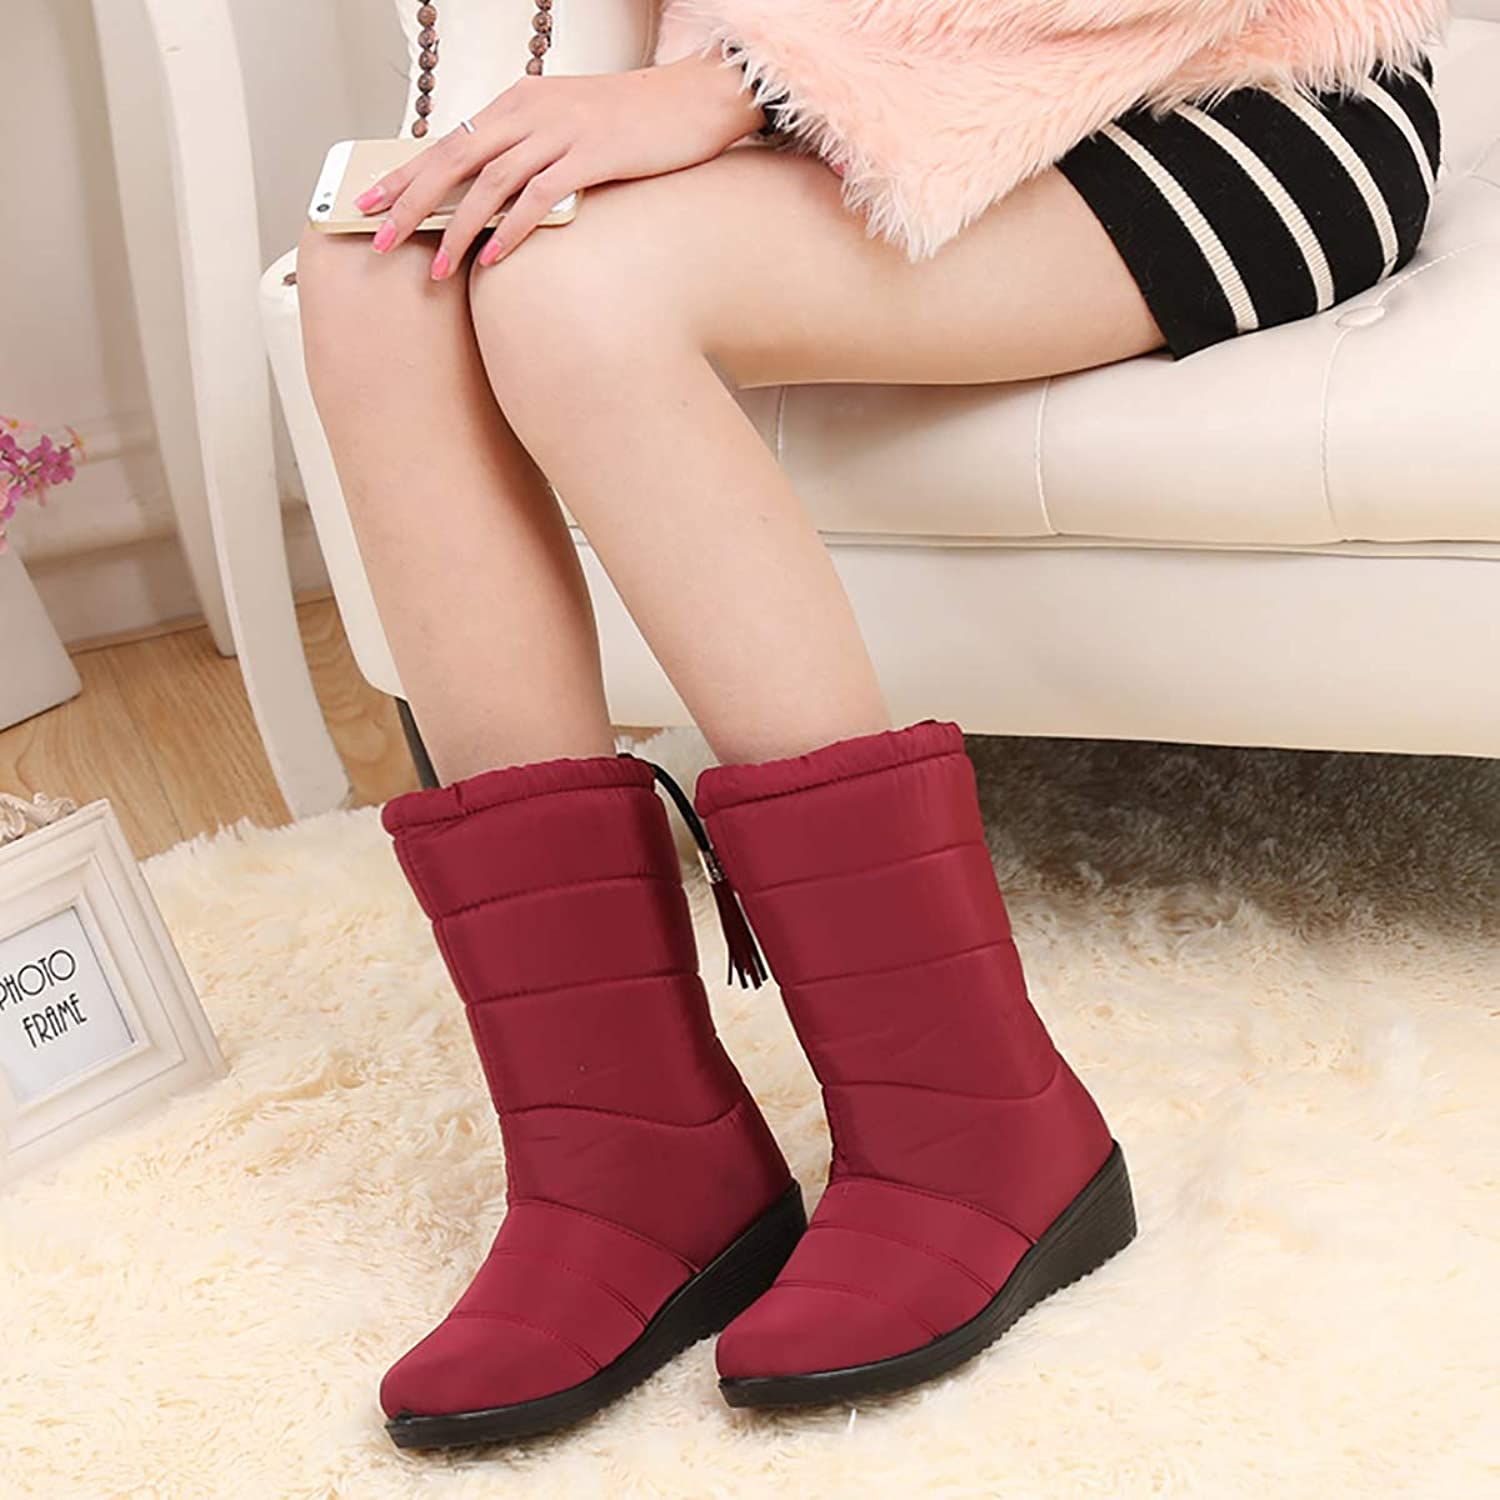 Winter Non-Slip Warm Snow Boots, Waterproof Non-Slip Middle-Aged Cotton shoes, Booties Plus Size Boots,Red,40